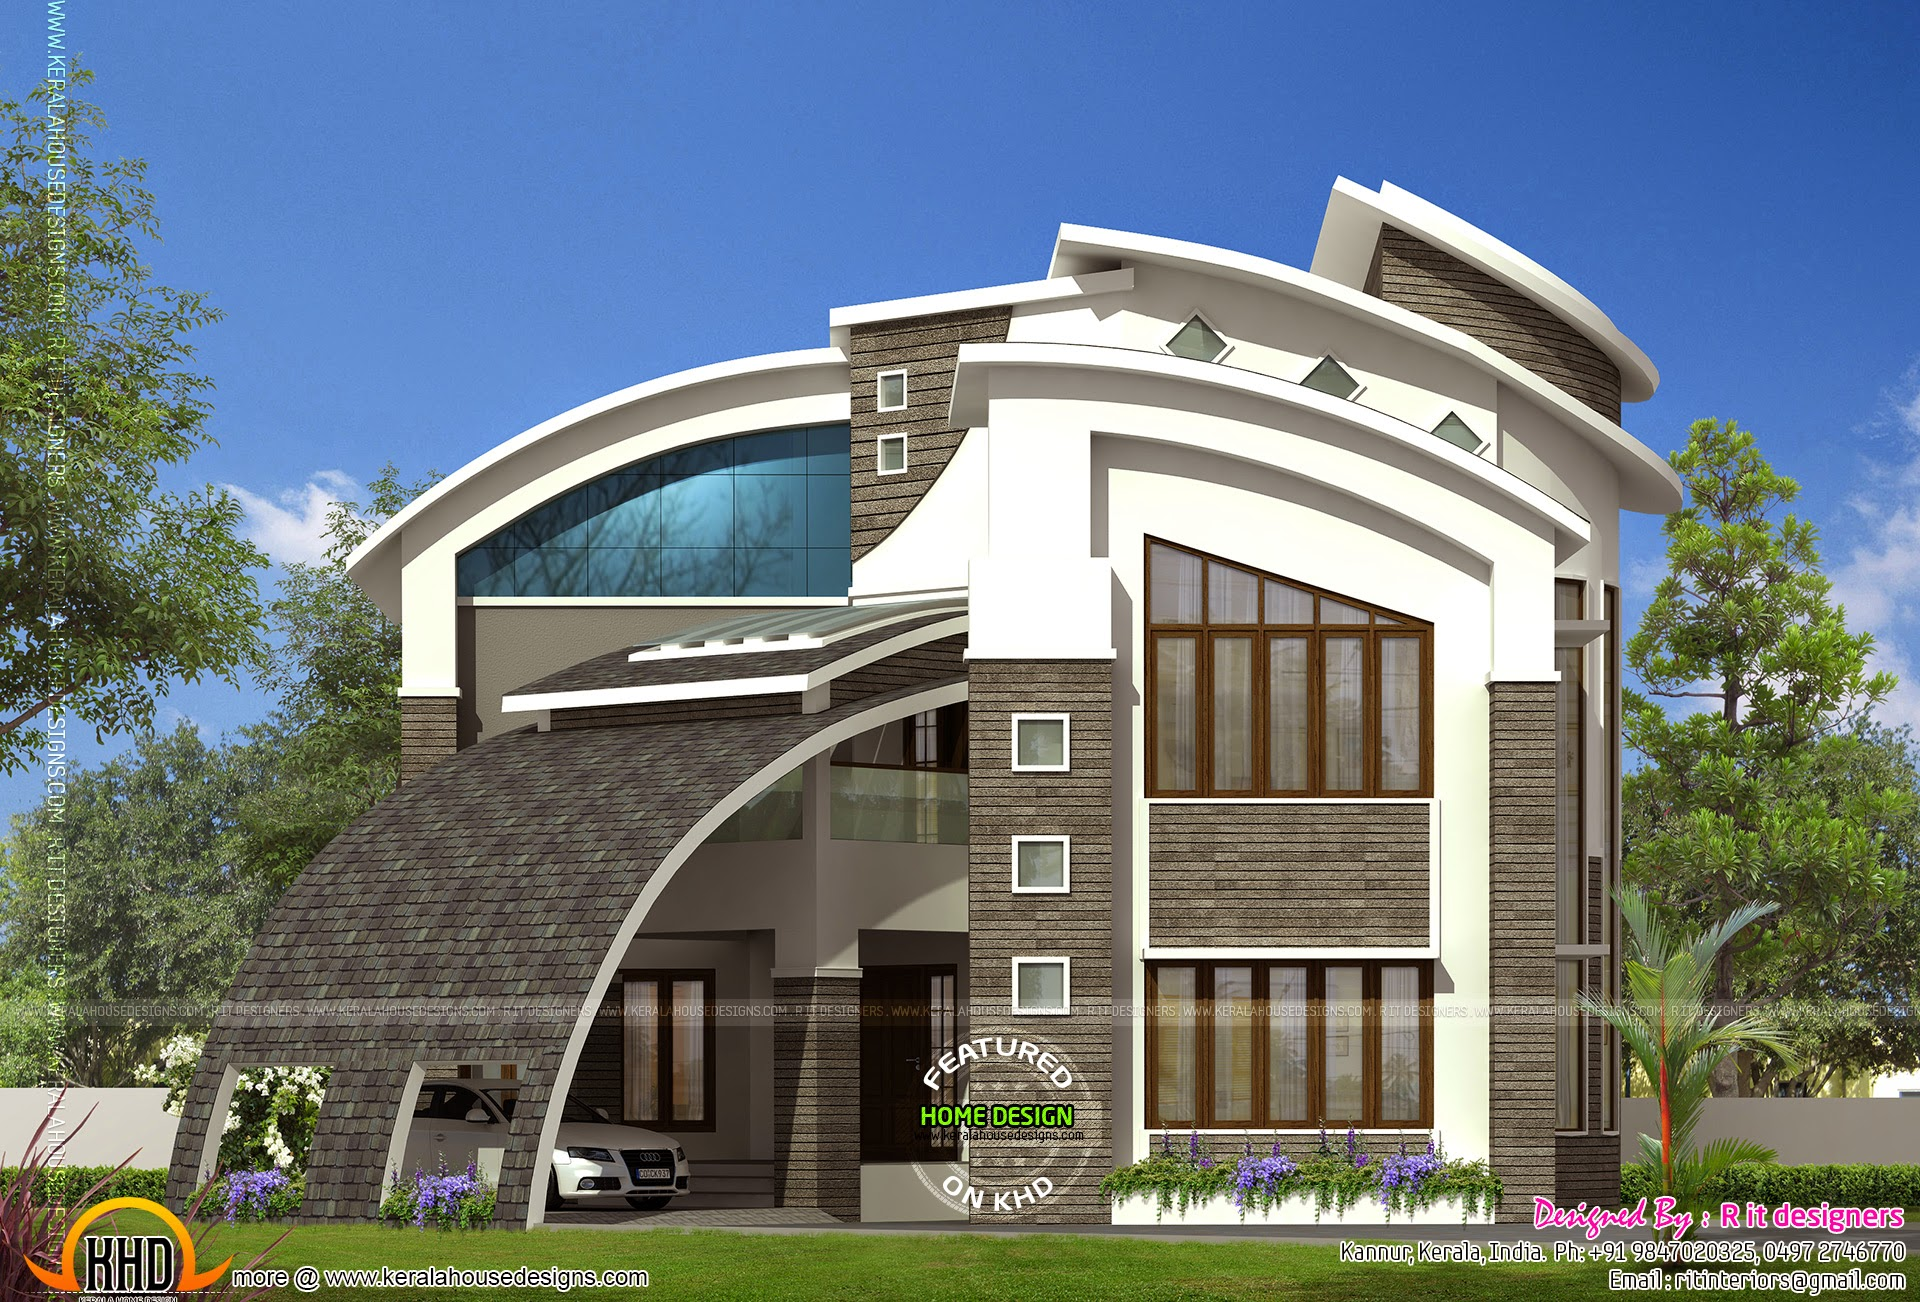 Most modern contemporary house design kerala home design and floor plans - Contemporary house designs ...